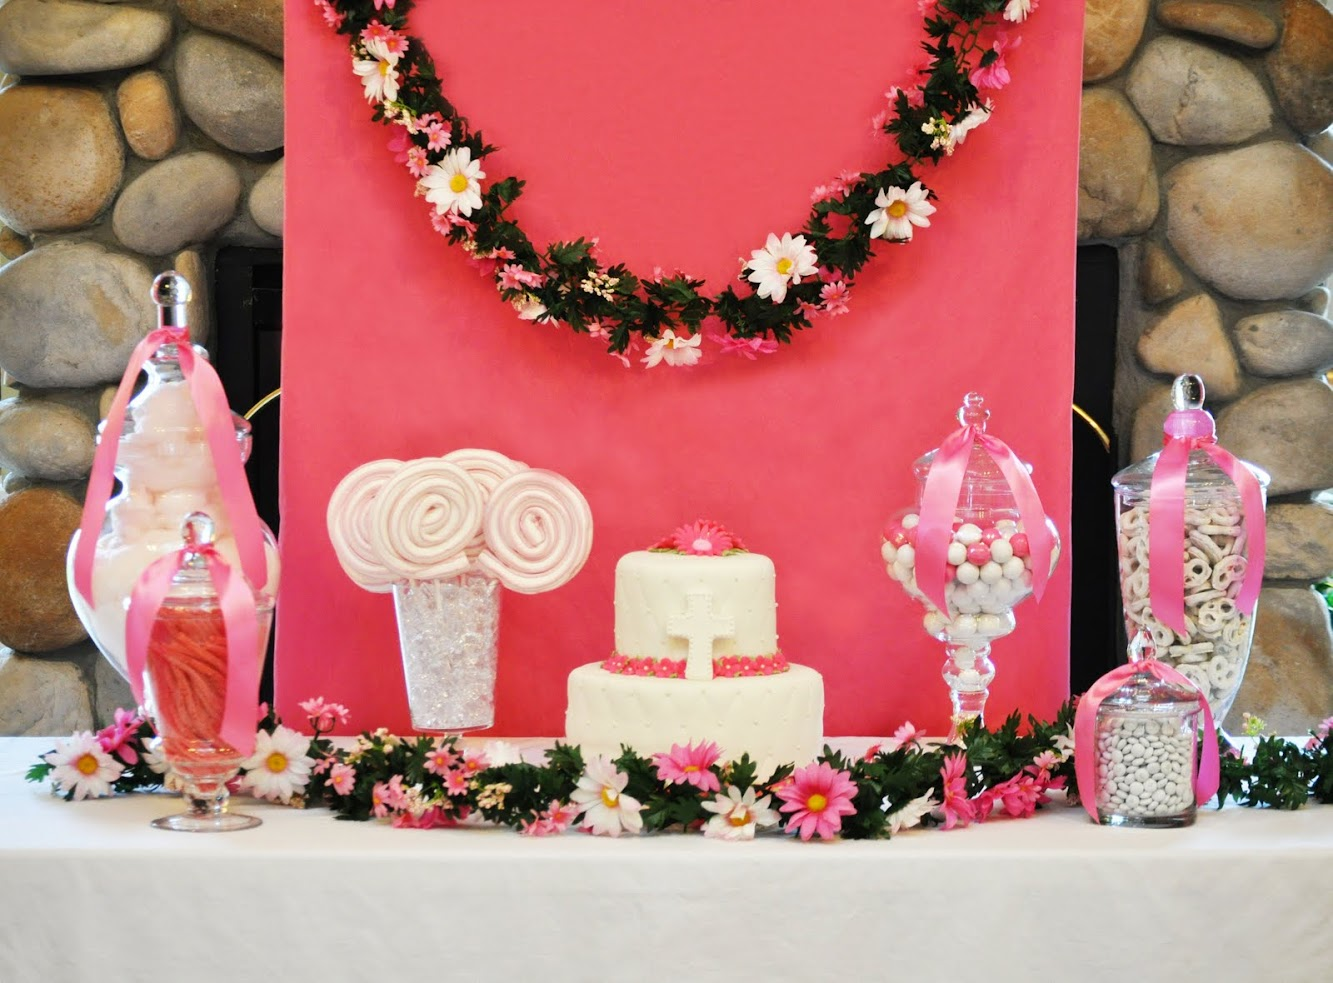 Pink & White Gerber Daisy Dessert Table